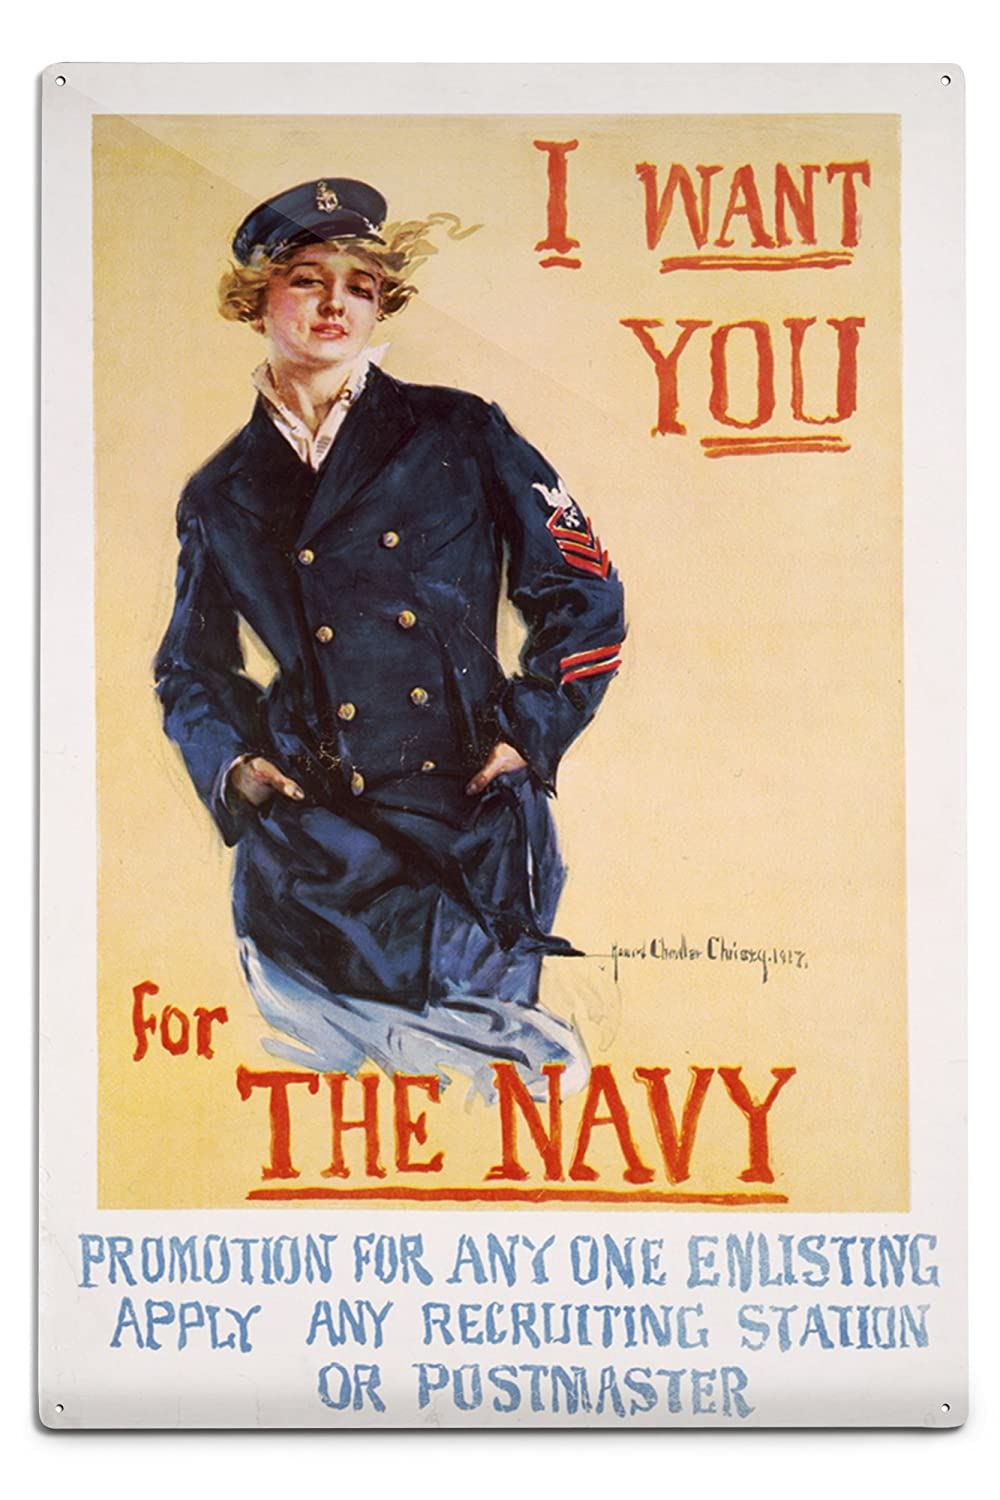 US Navyヴィンテージポスター – I Want You For The Navy 12 x 18 Metal Sign LANT-51393-12x18M 12 x 18 Metal Sign  B06Y1J1CTT